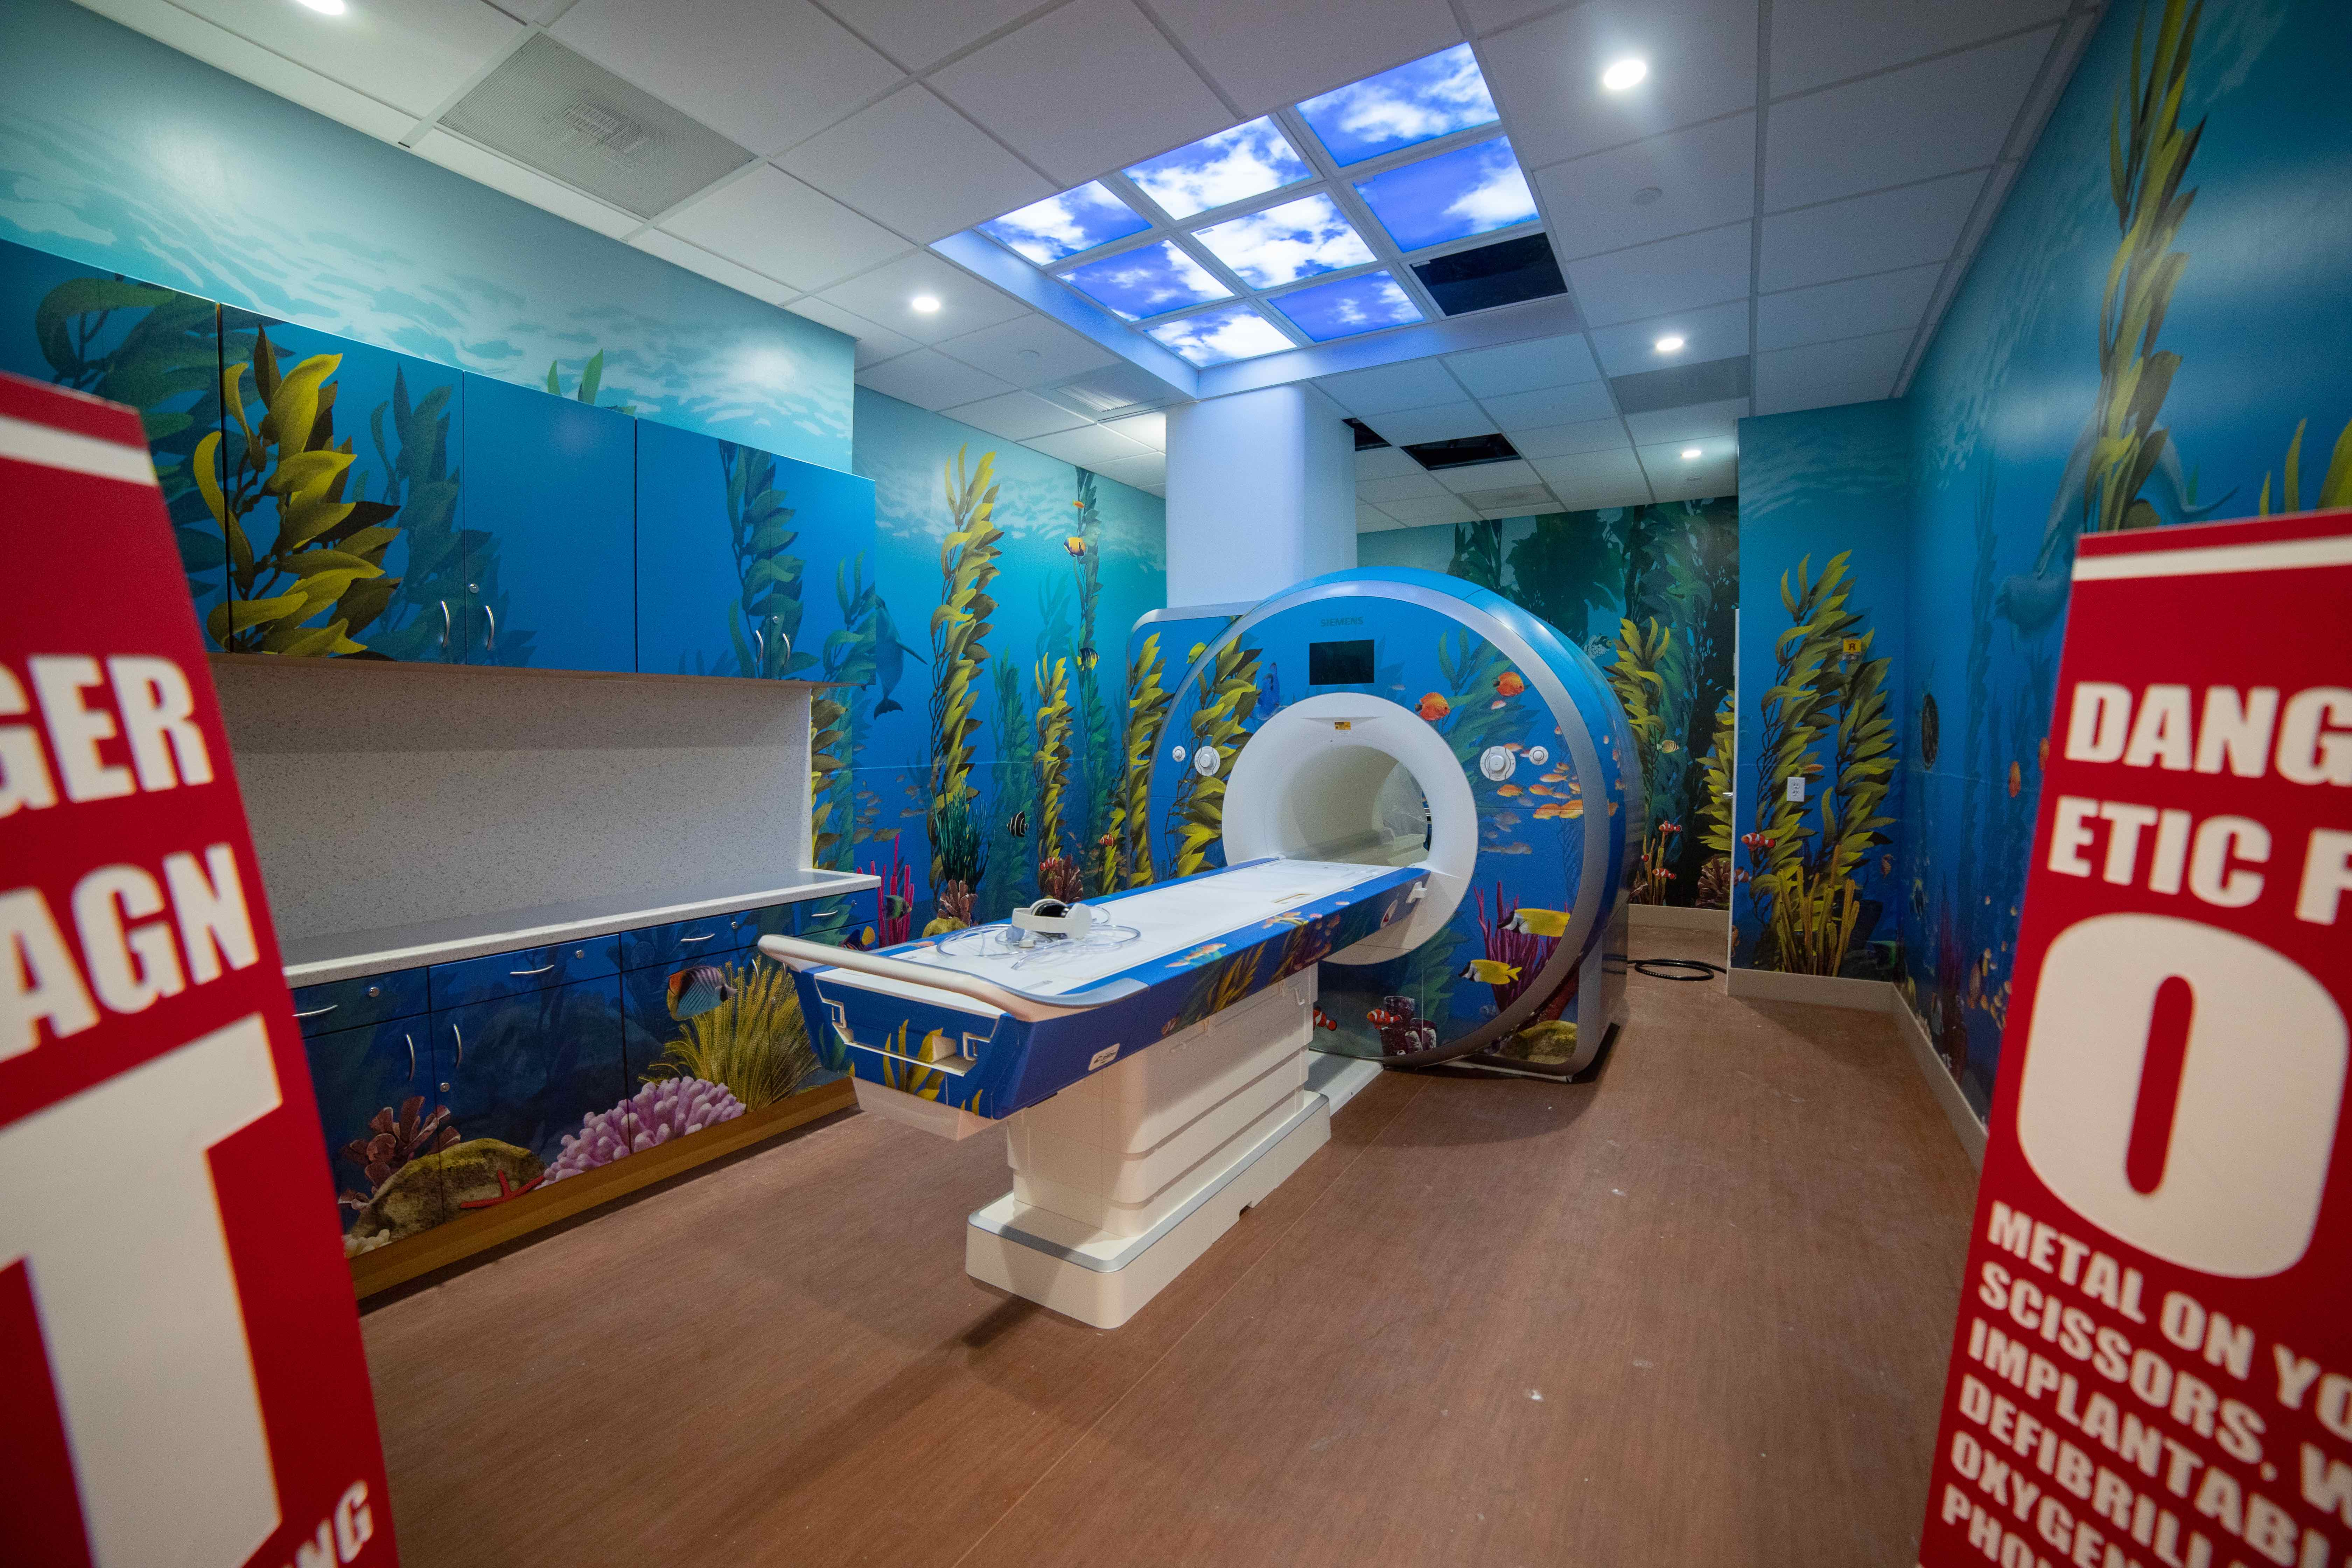 An MRI in a an underwater theme